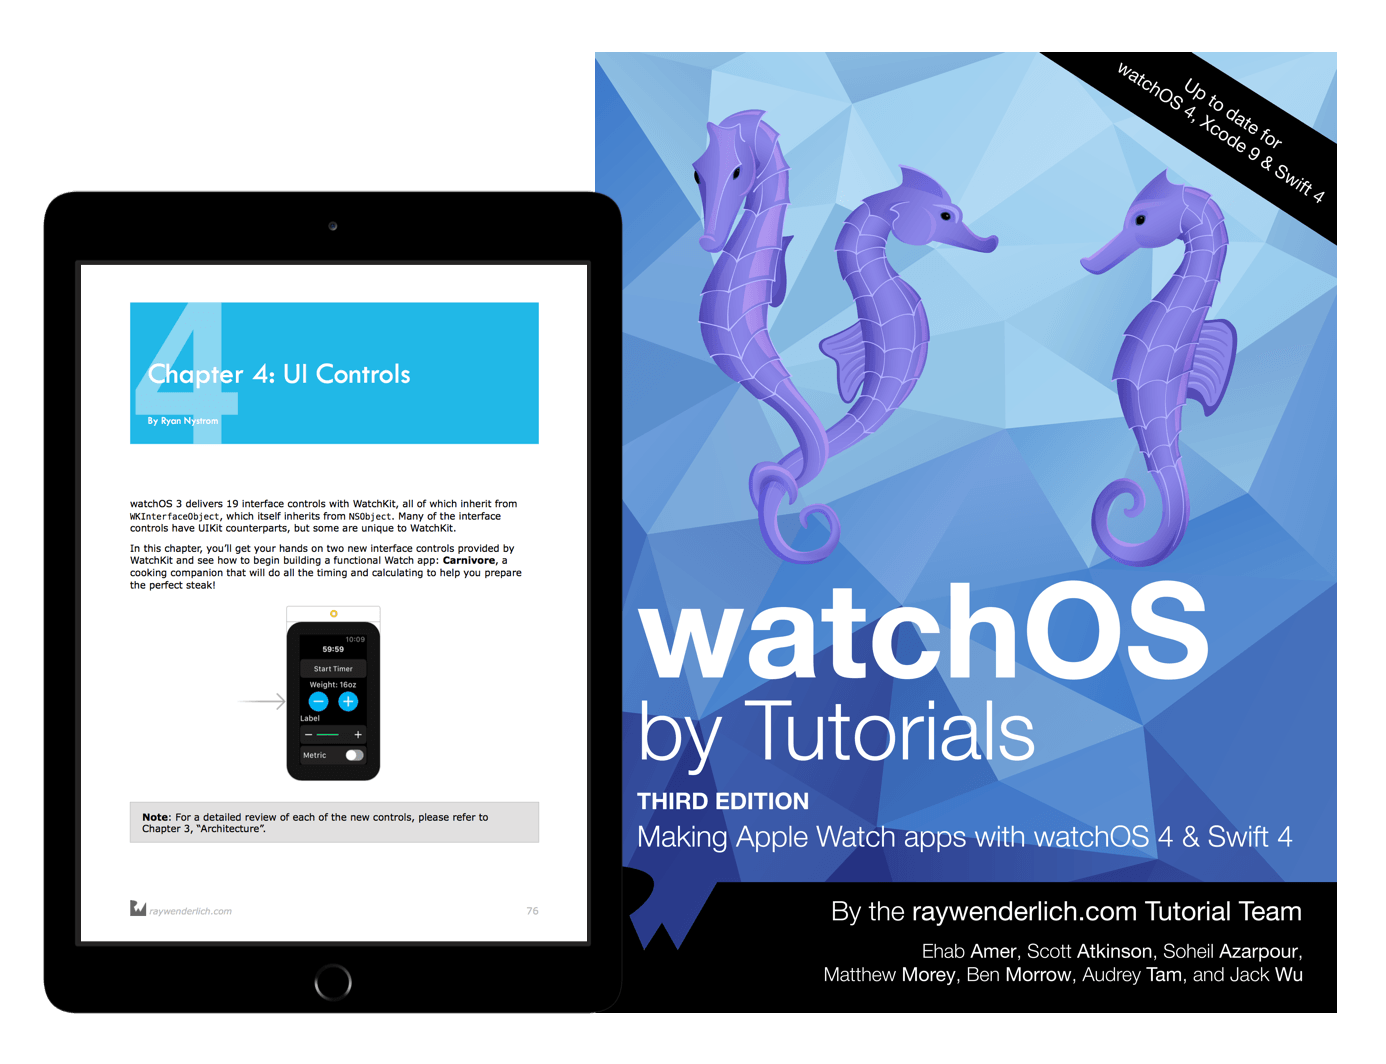 WatchOS by Tutorials